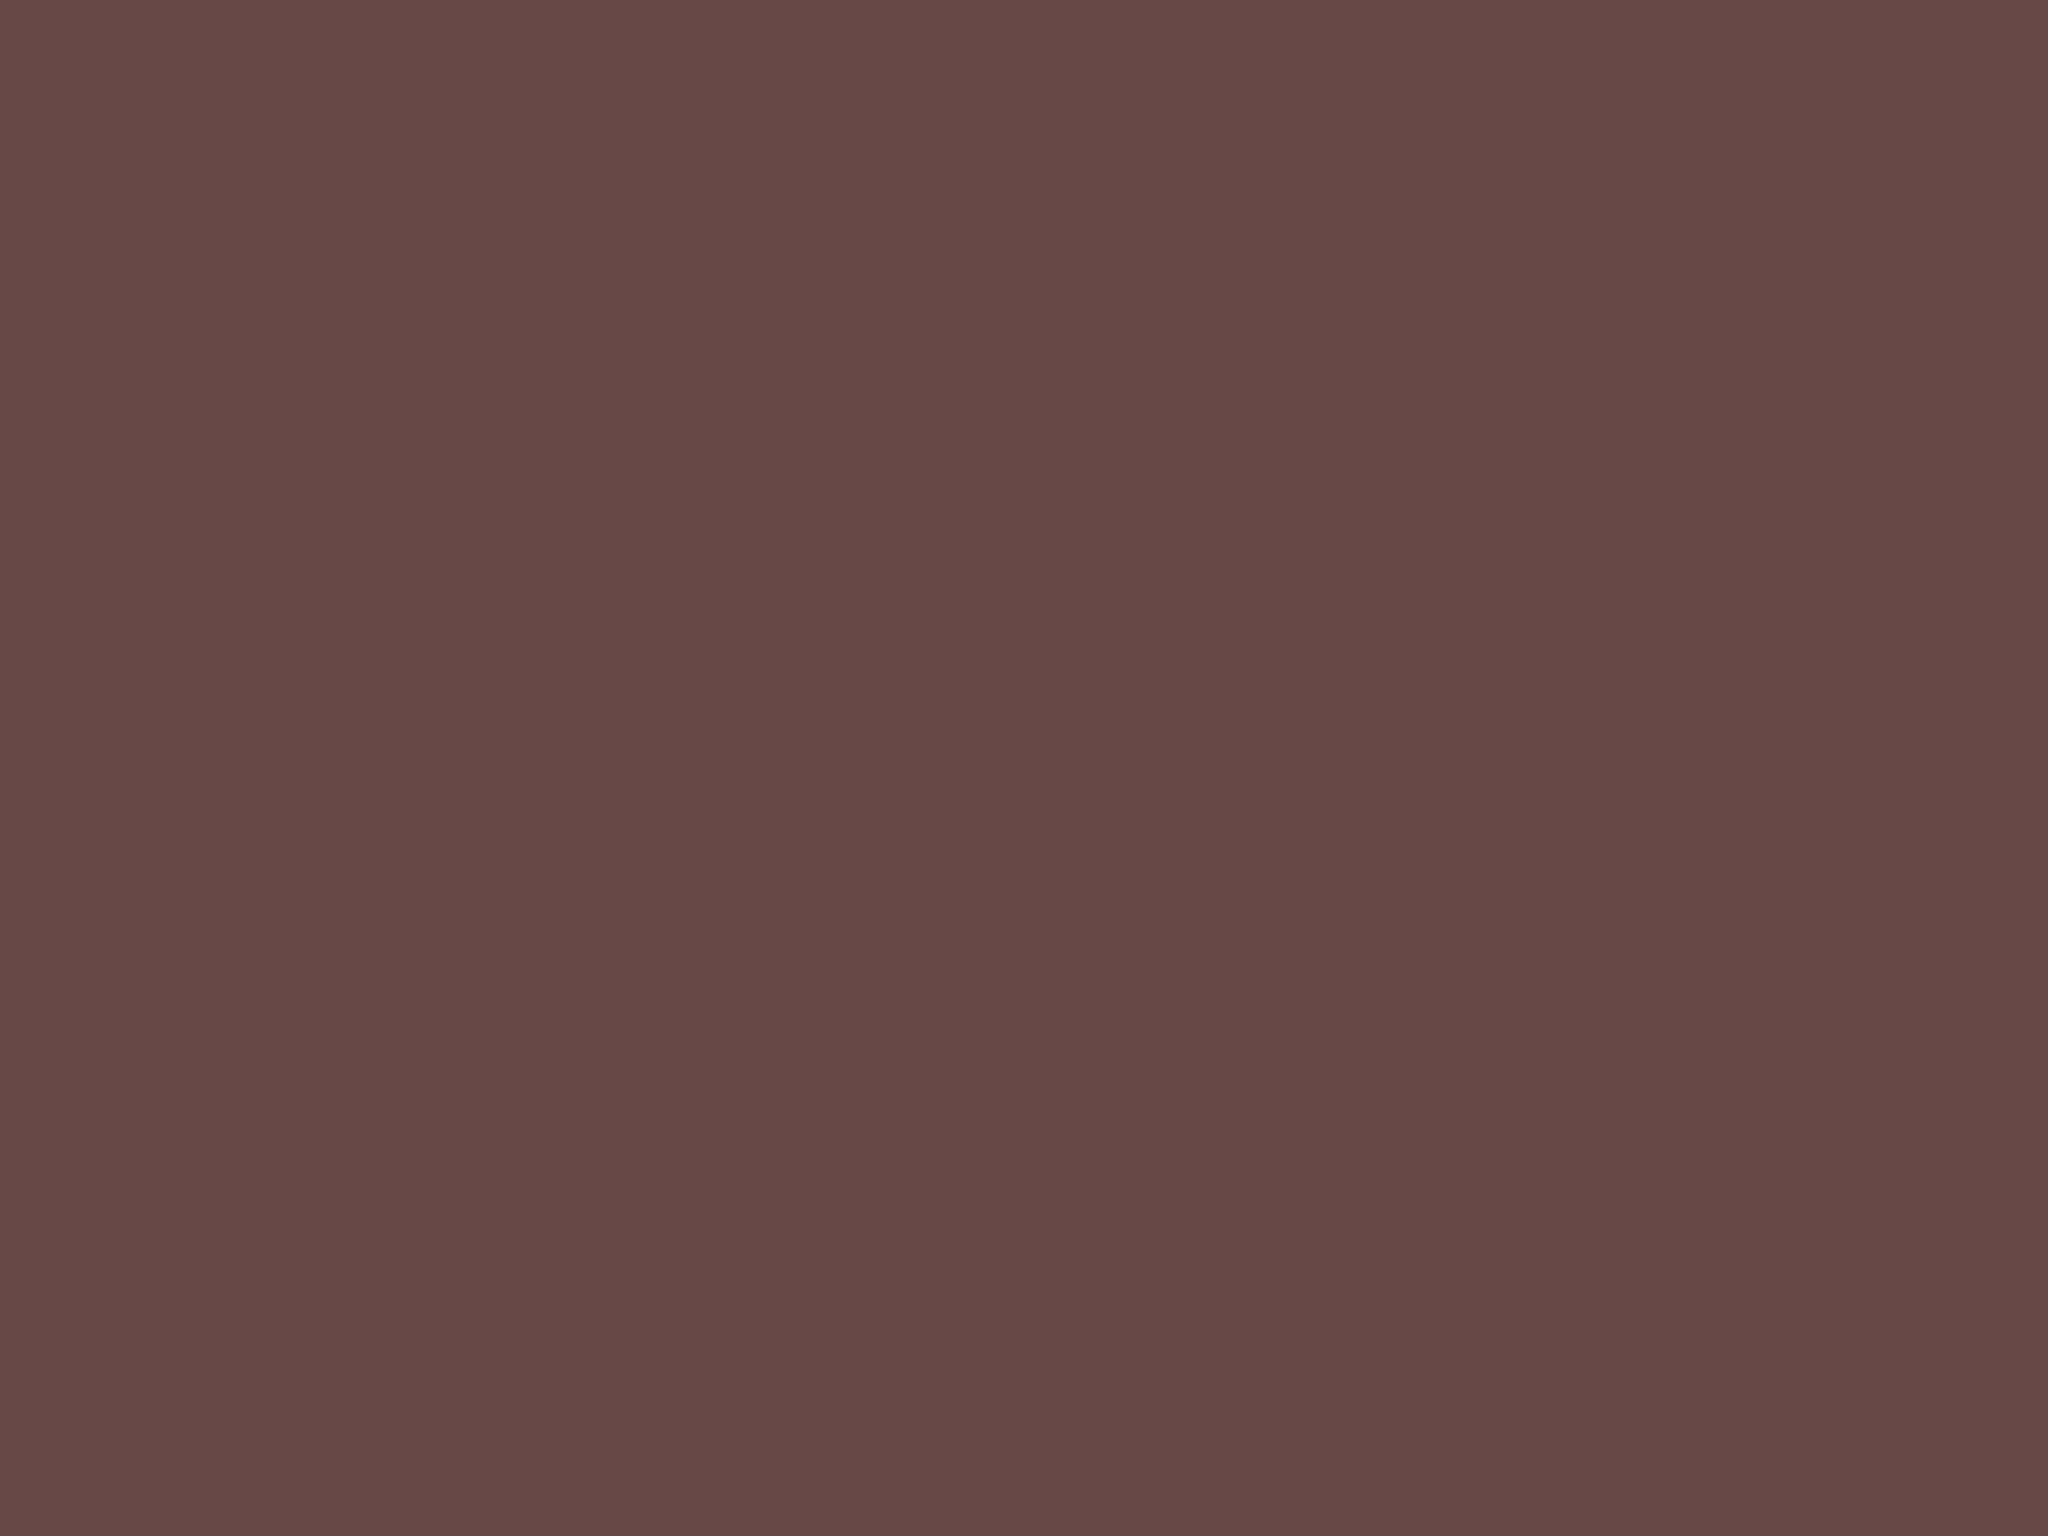 2048x1536 Rose Ebony Solid Color Background